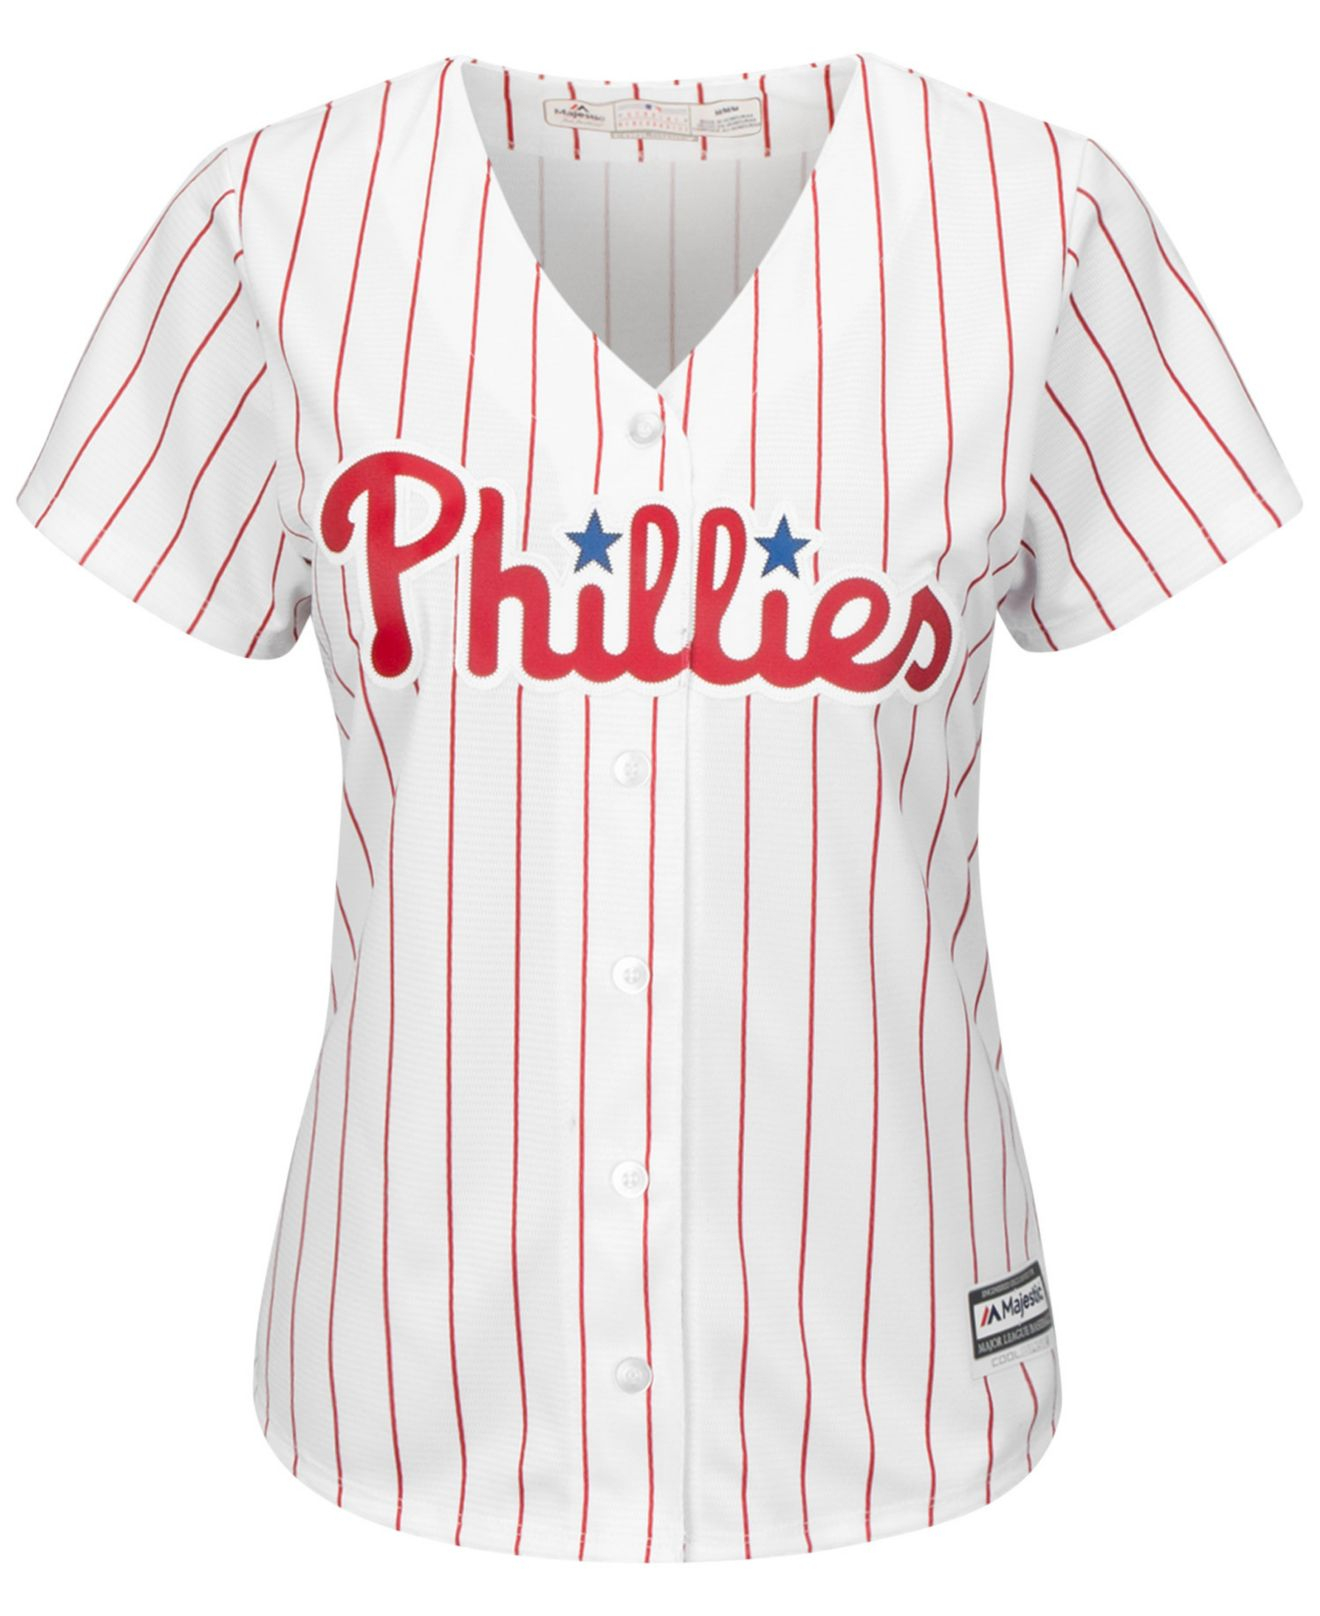 separation shoes 01339 9eef1 Majestic White Women's Chase Utley Philadelphia Phillies Replica Jersey